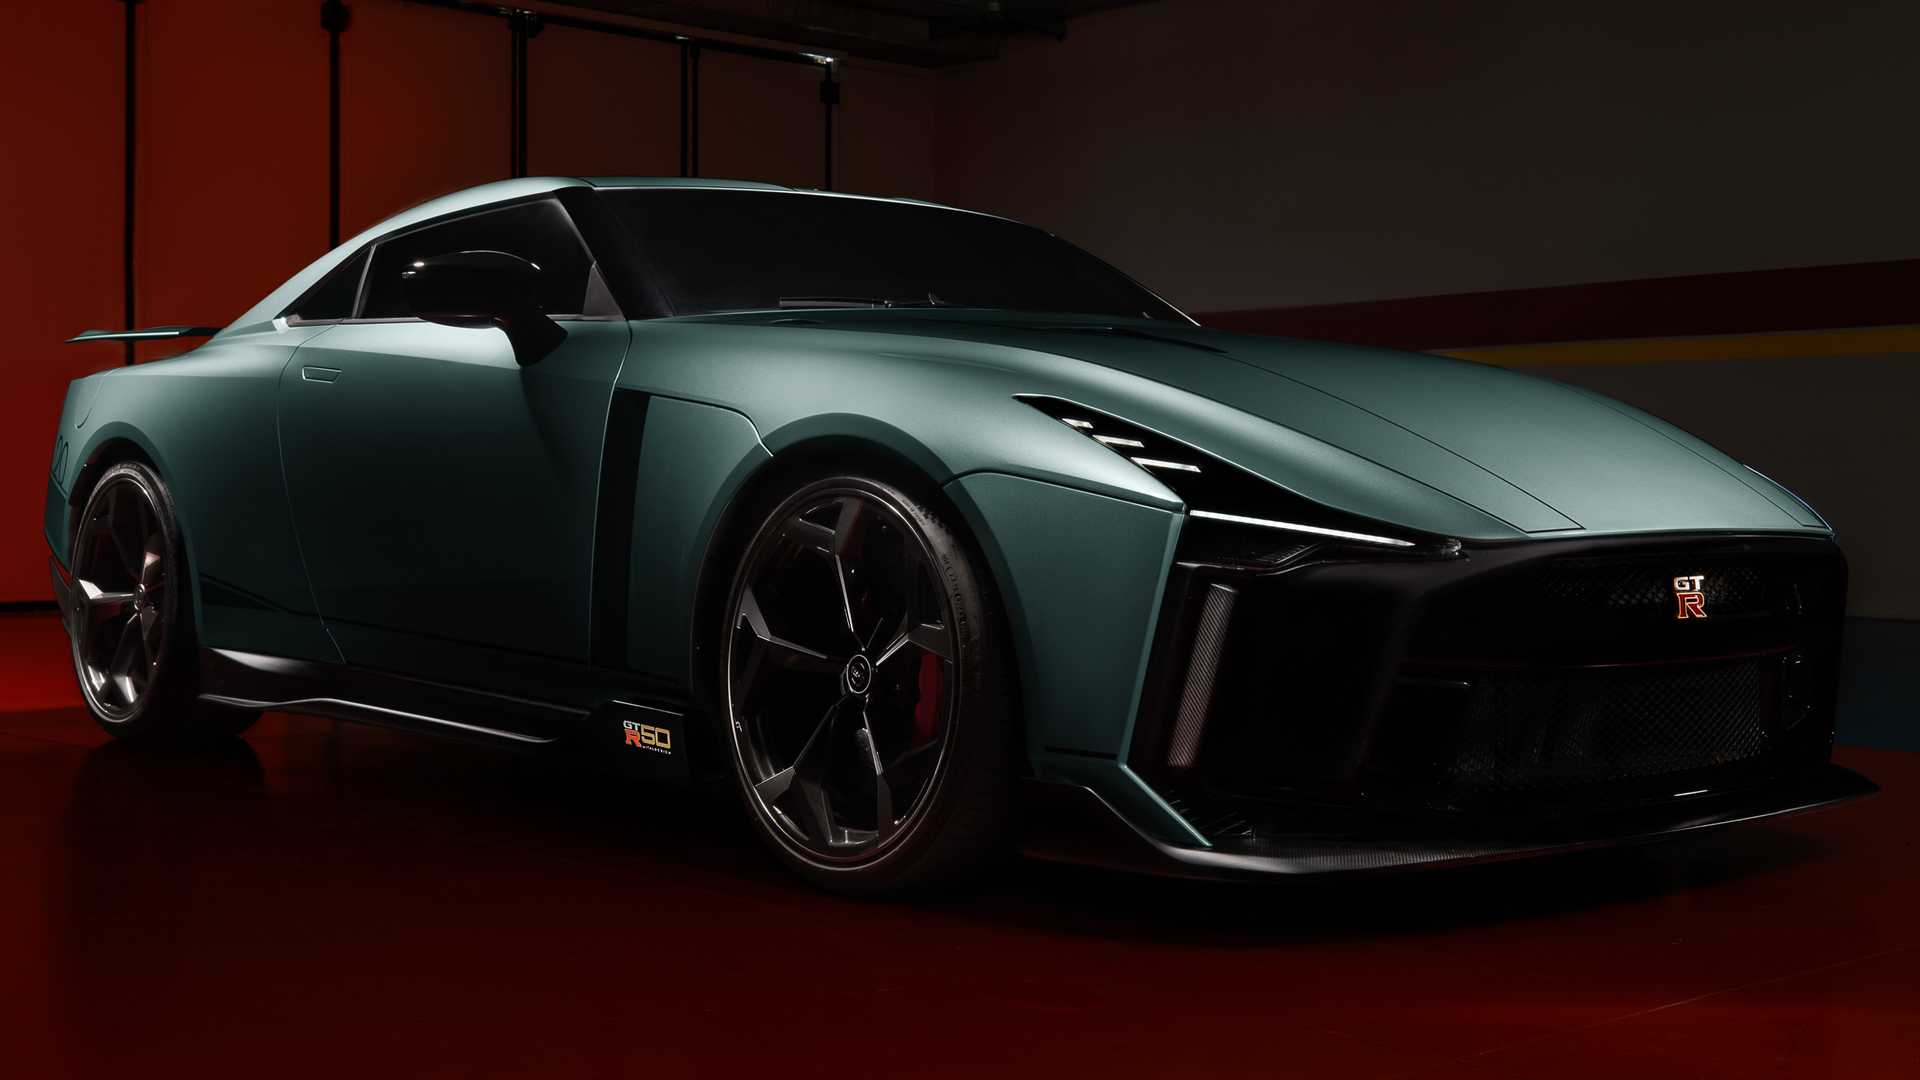 Спорткар Nissan GT-R 50 by Italdesign: онлайн-премьера